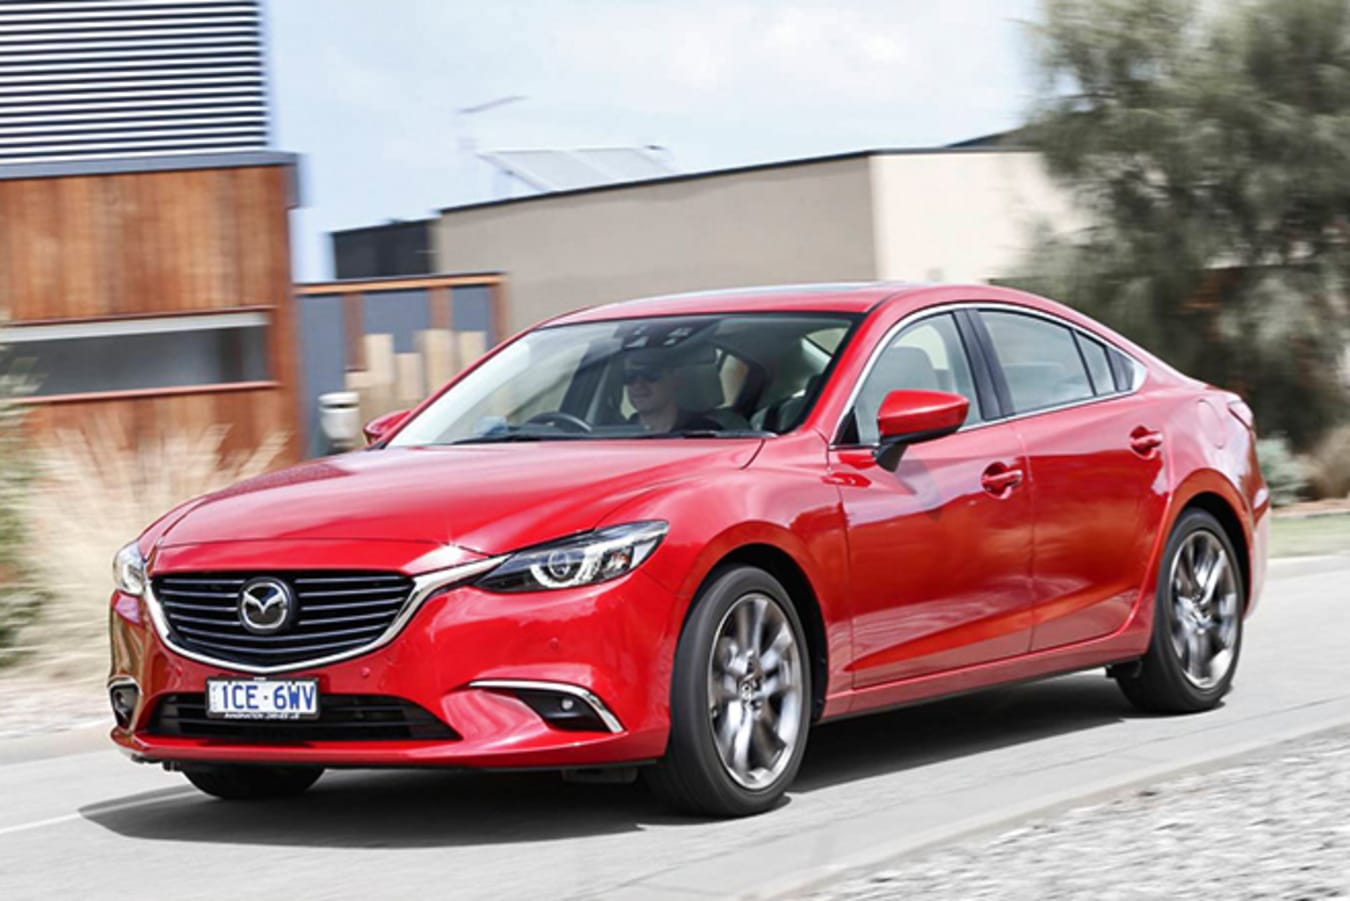 Mazda 6 front side driving